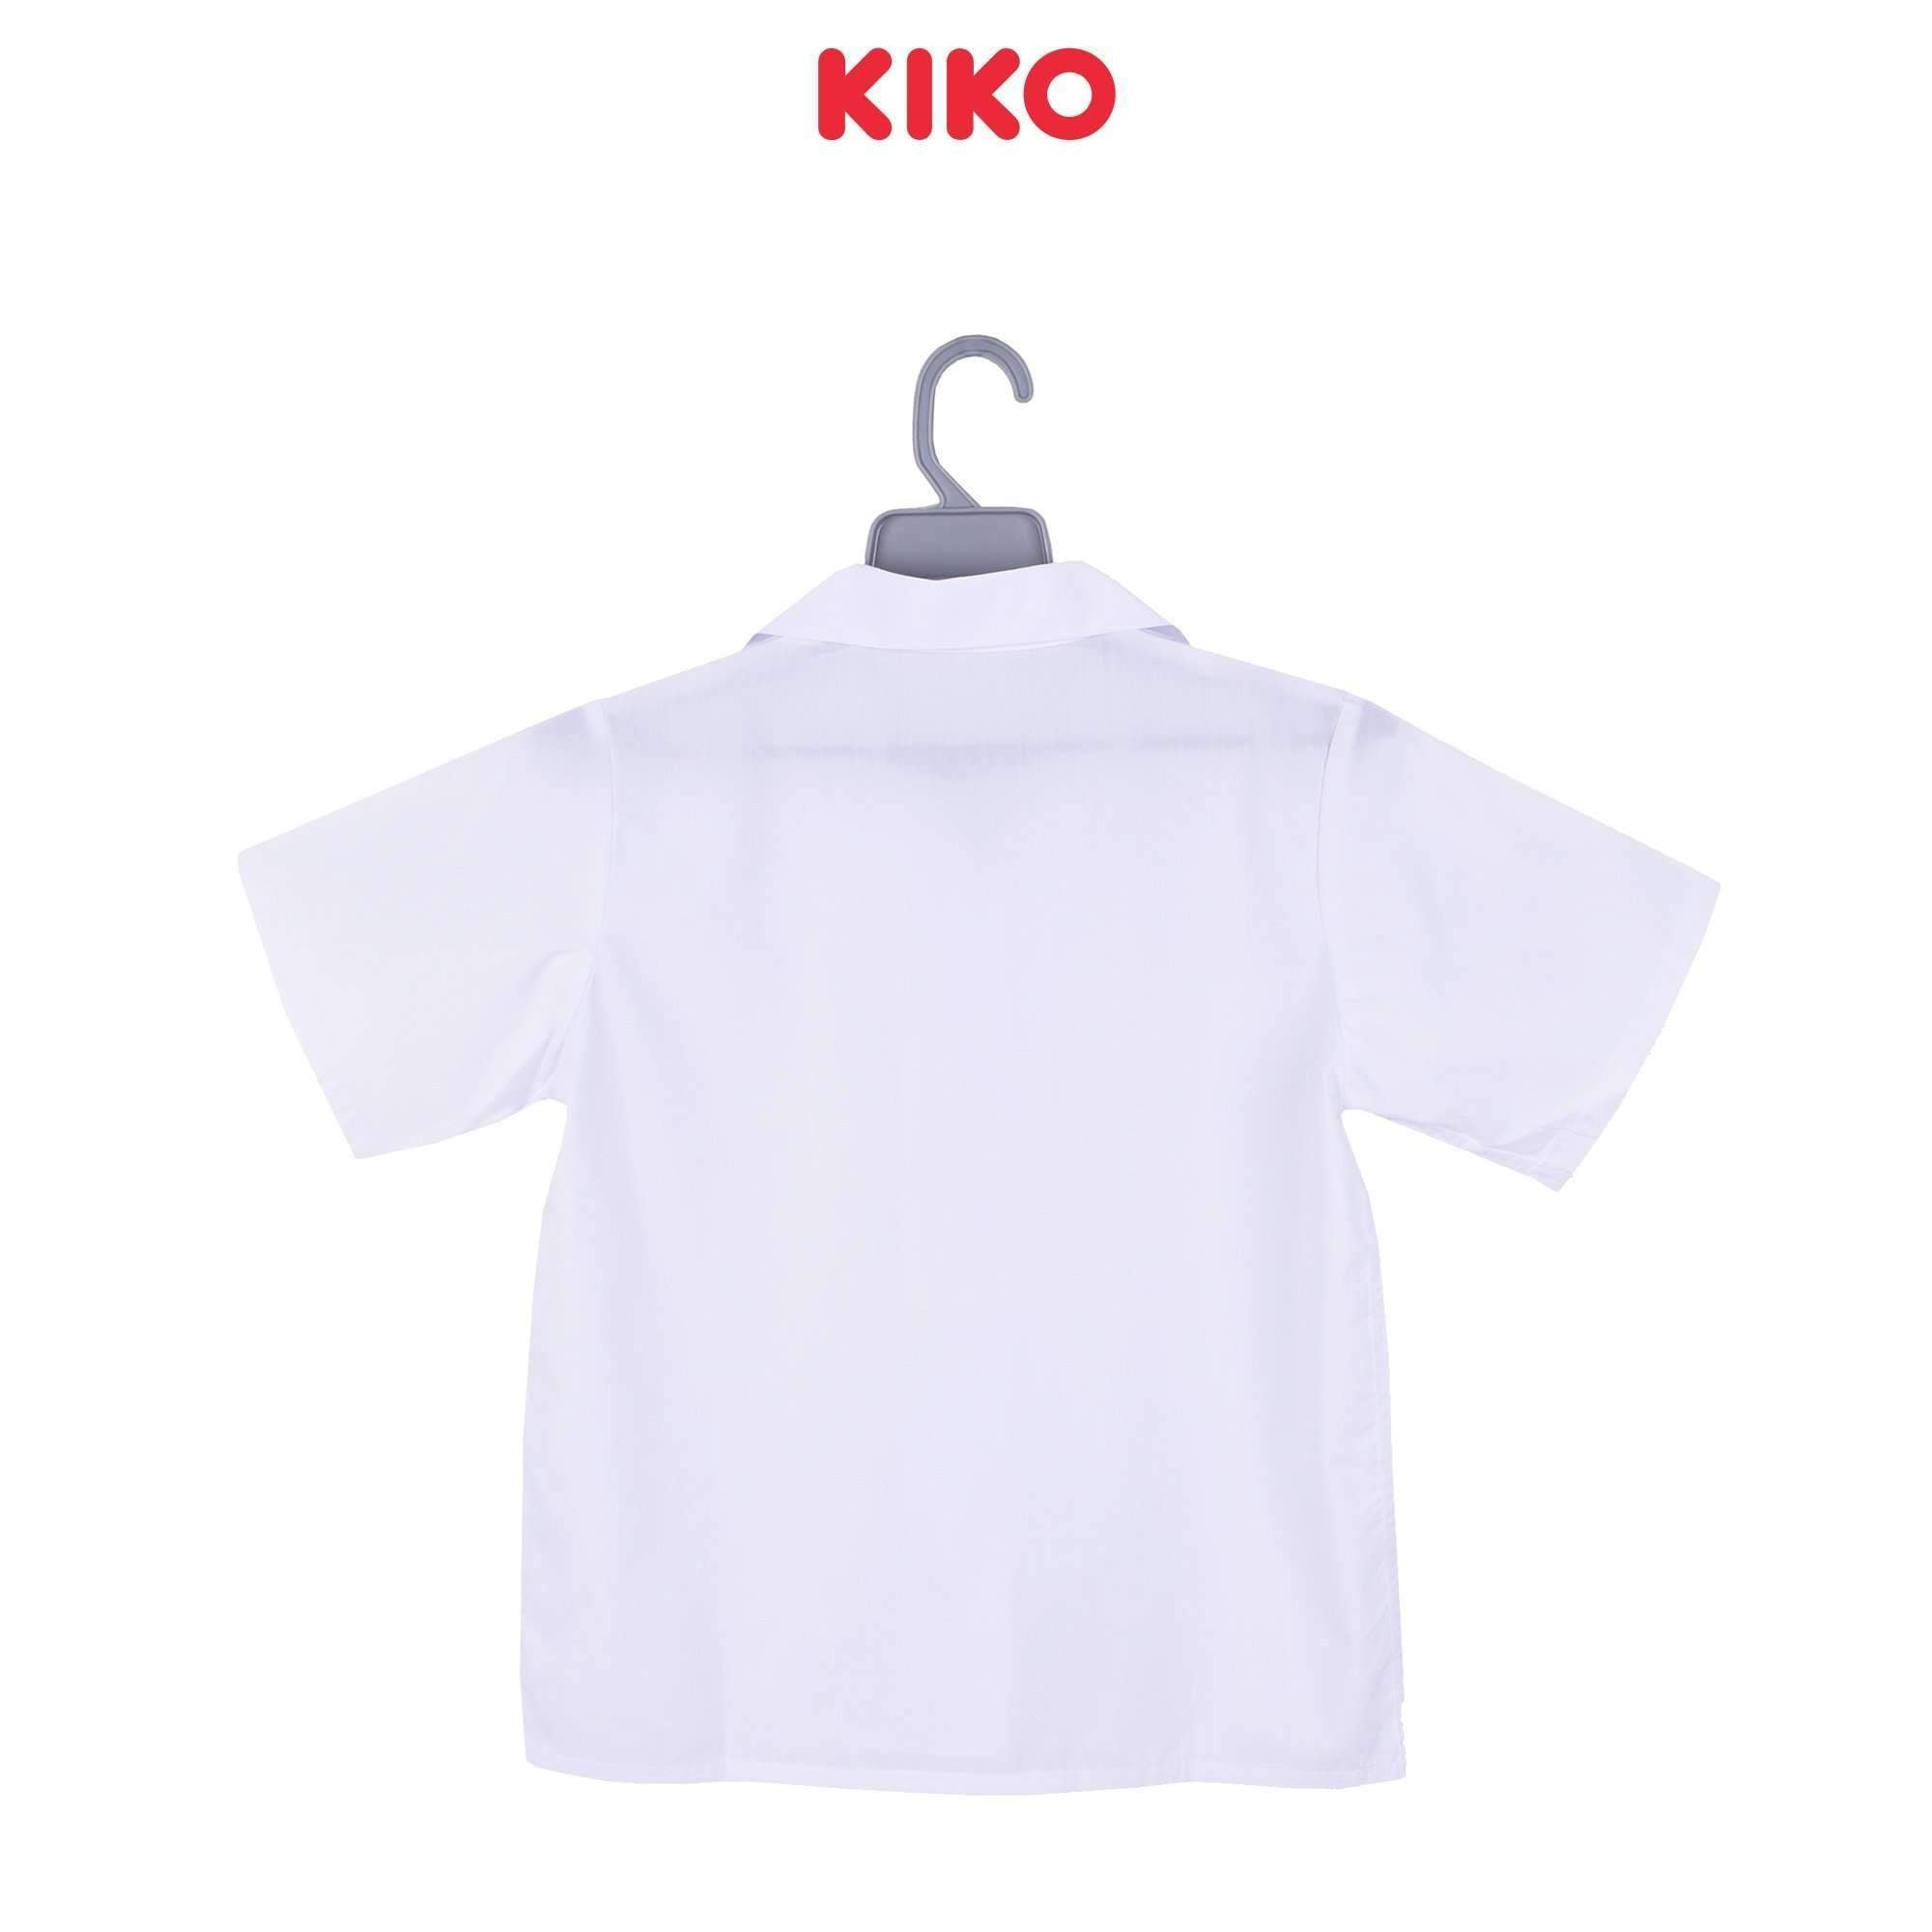 K-Primary Girl Short Sleeve Blouse School Uniform Primary - White 121034-14X : Buy K-Primary online at CMG.MY